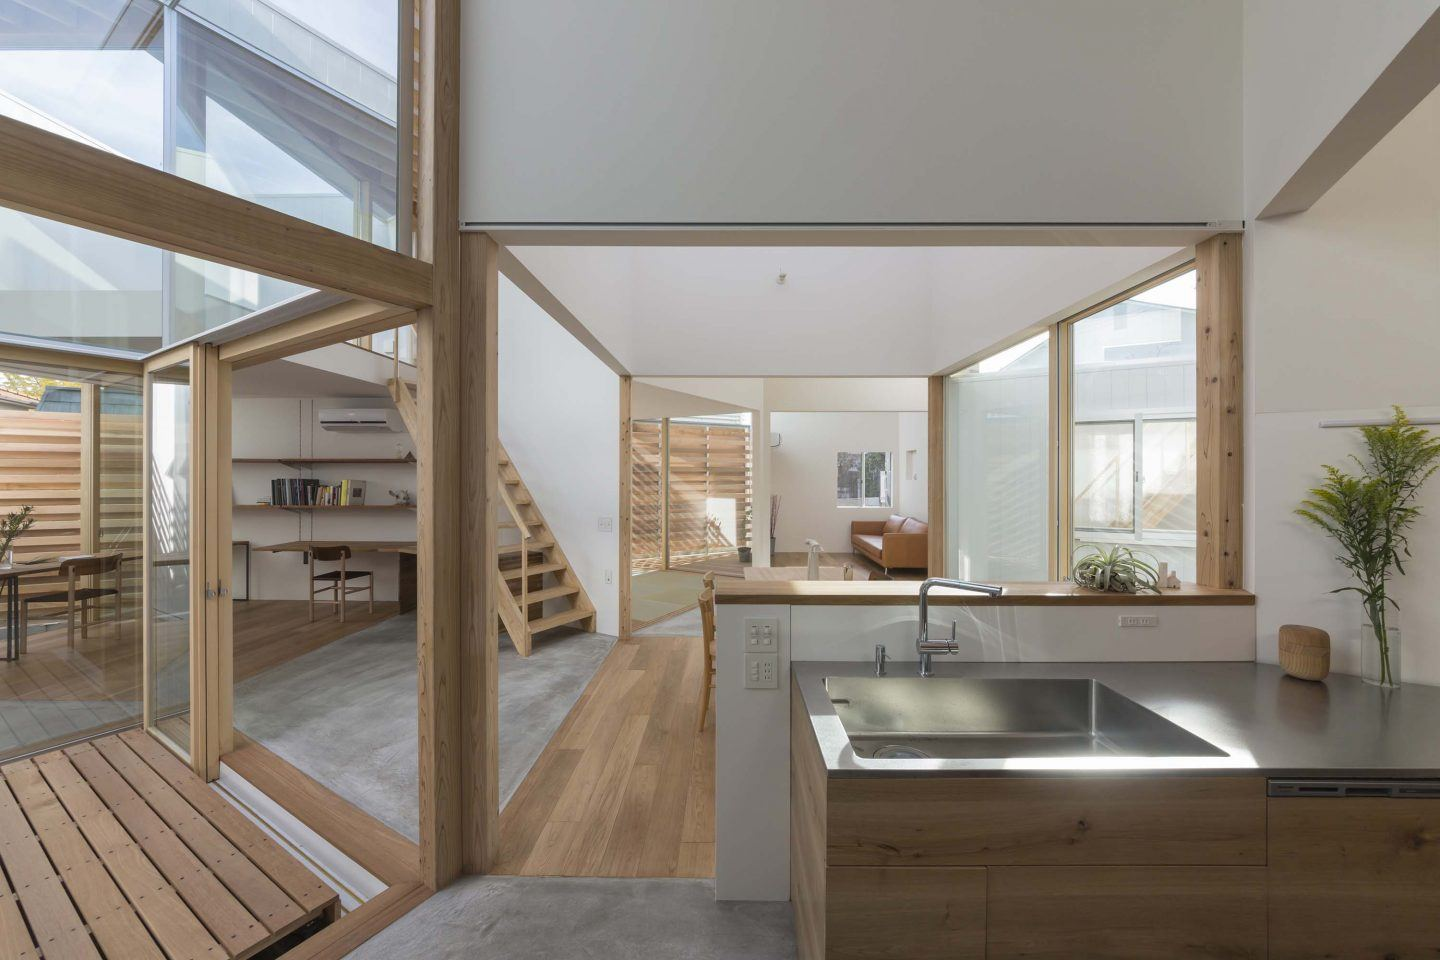 IGNANT-Architecture-Tato-Architects-House-In-Hokusetsu-14